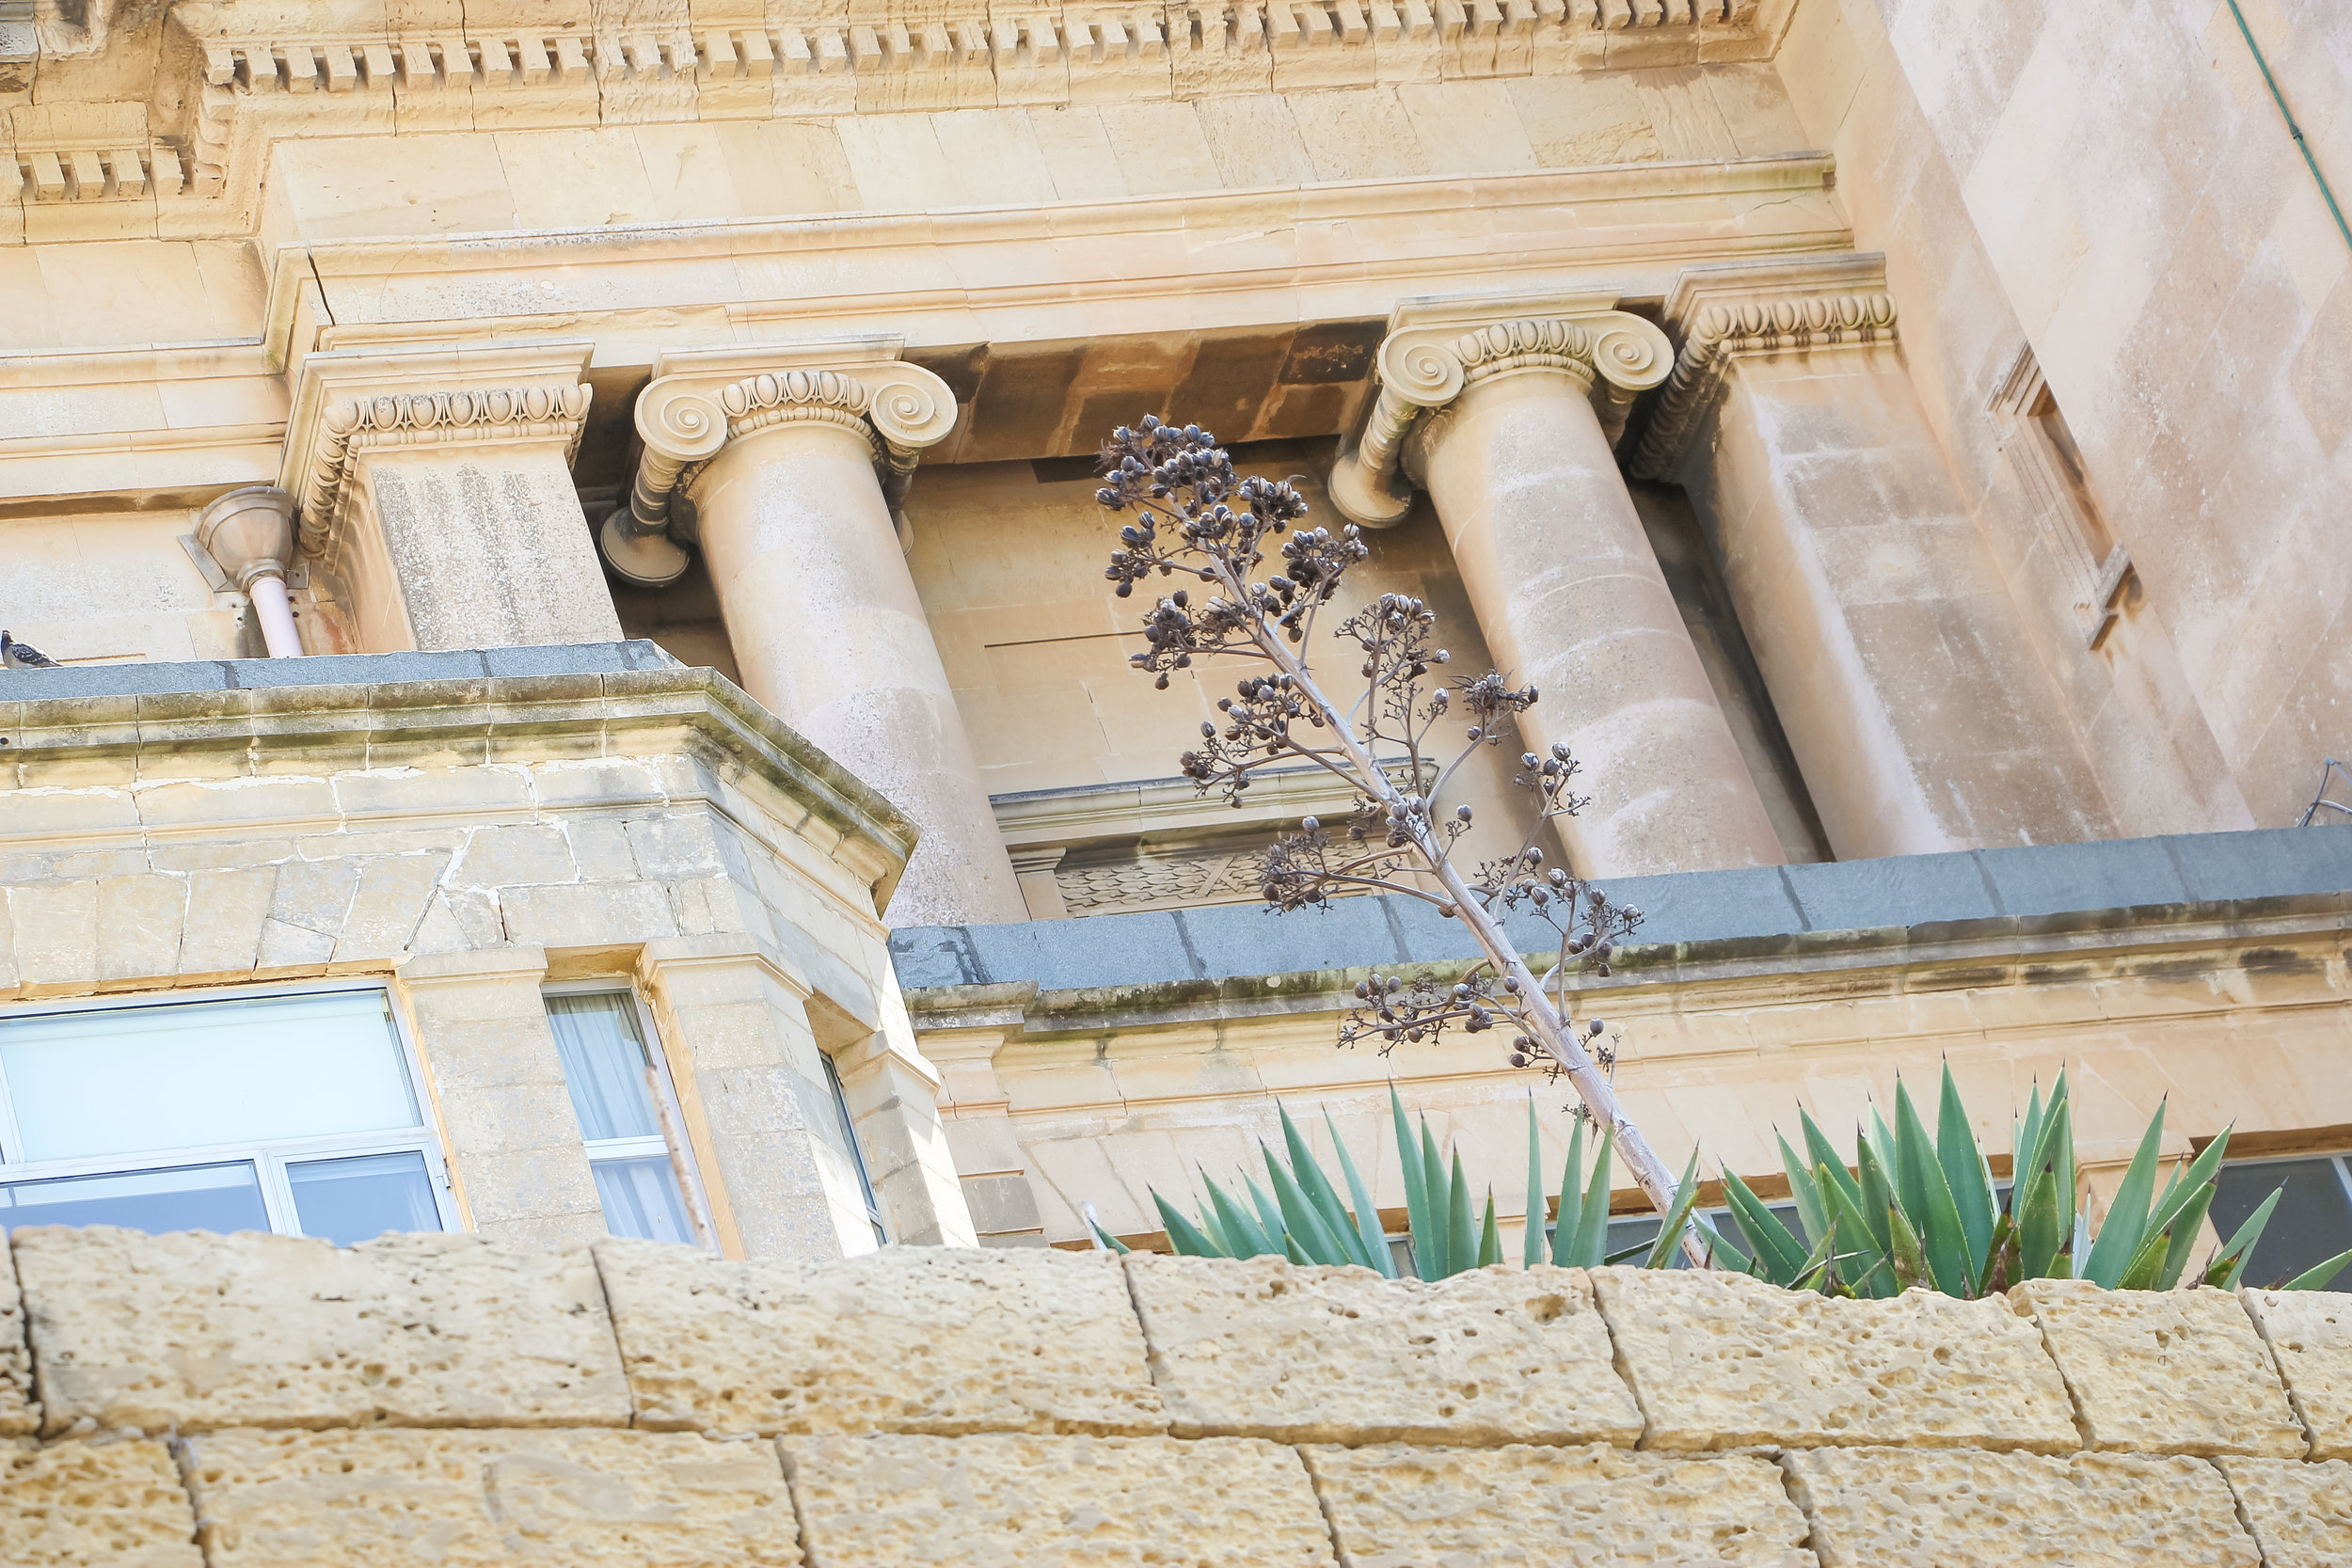 Architecture And Nature | House of Malta | Old Town of Valletta | - Thinking About Appreciation For Quality In Malta | Malta, Europe | DoLessGetMoreDone.com | - Canon Minimal Travel Documentary Photography - search for Liveability | Sustainability